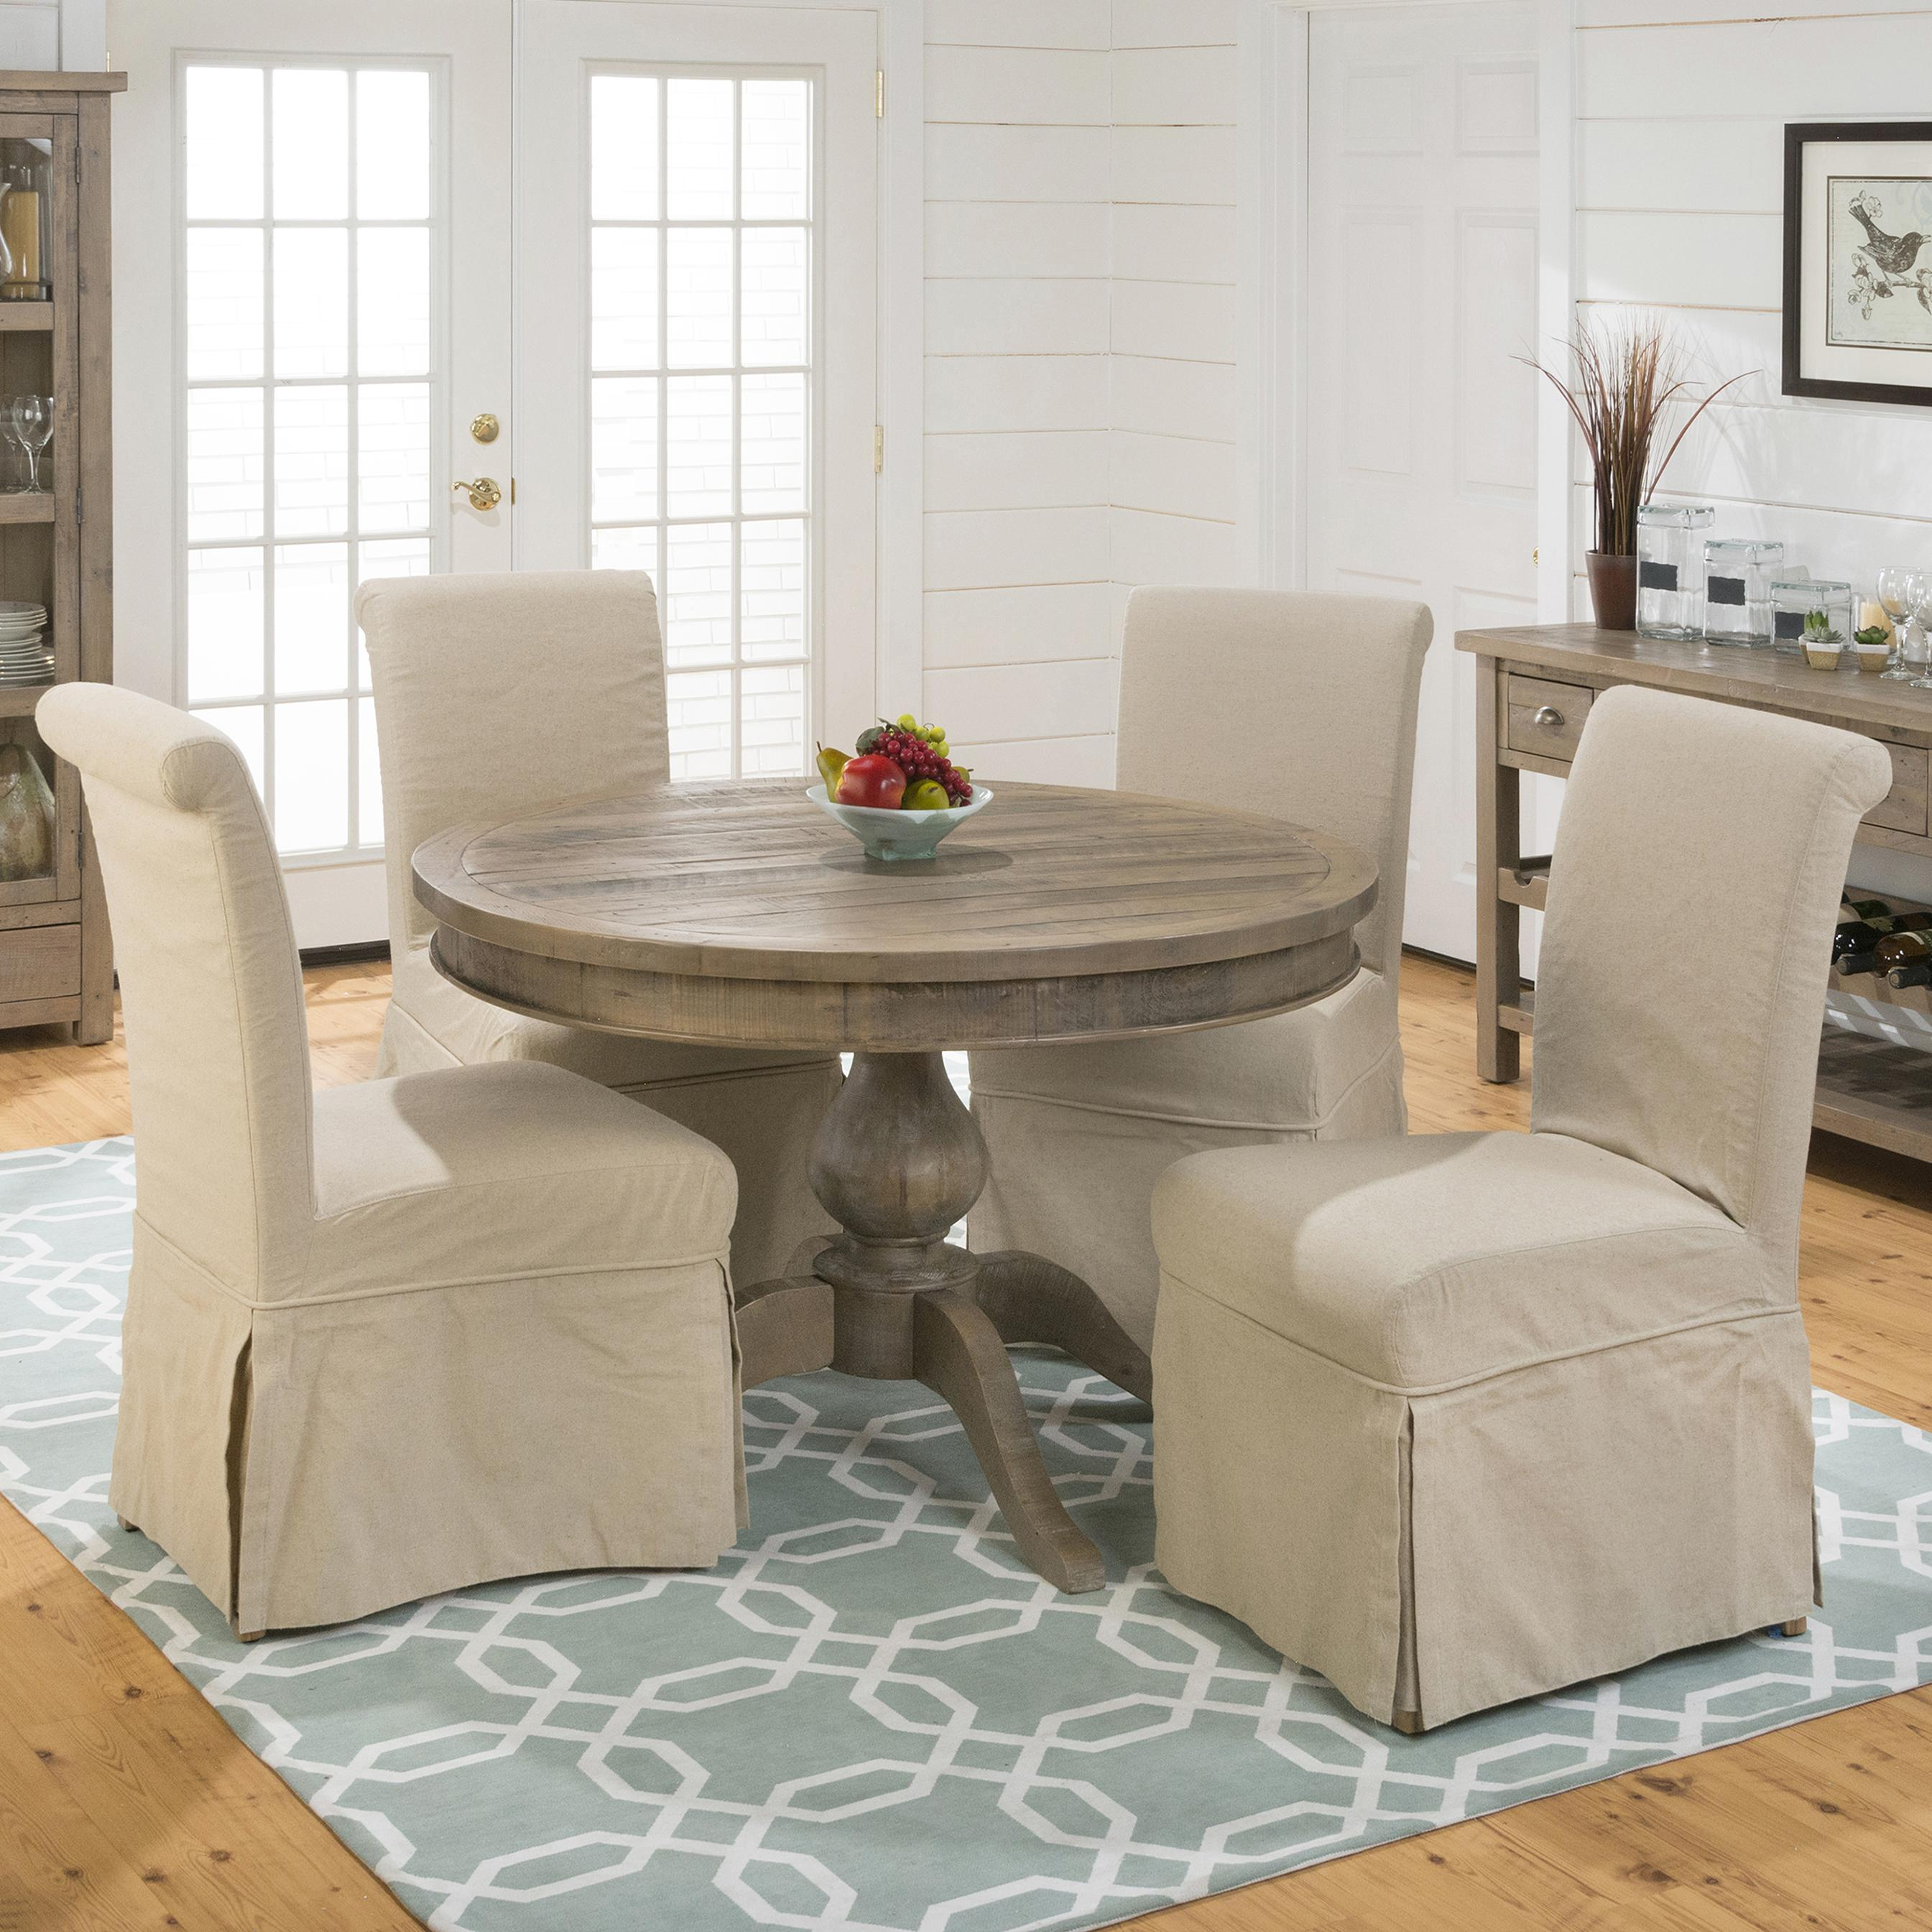 Jofran Slater Mill Pine Chair and Table Set - Item Number: 941-66T+66B+4x162KD